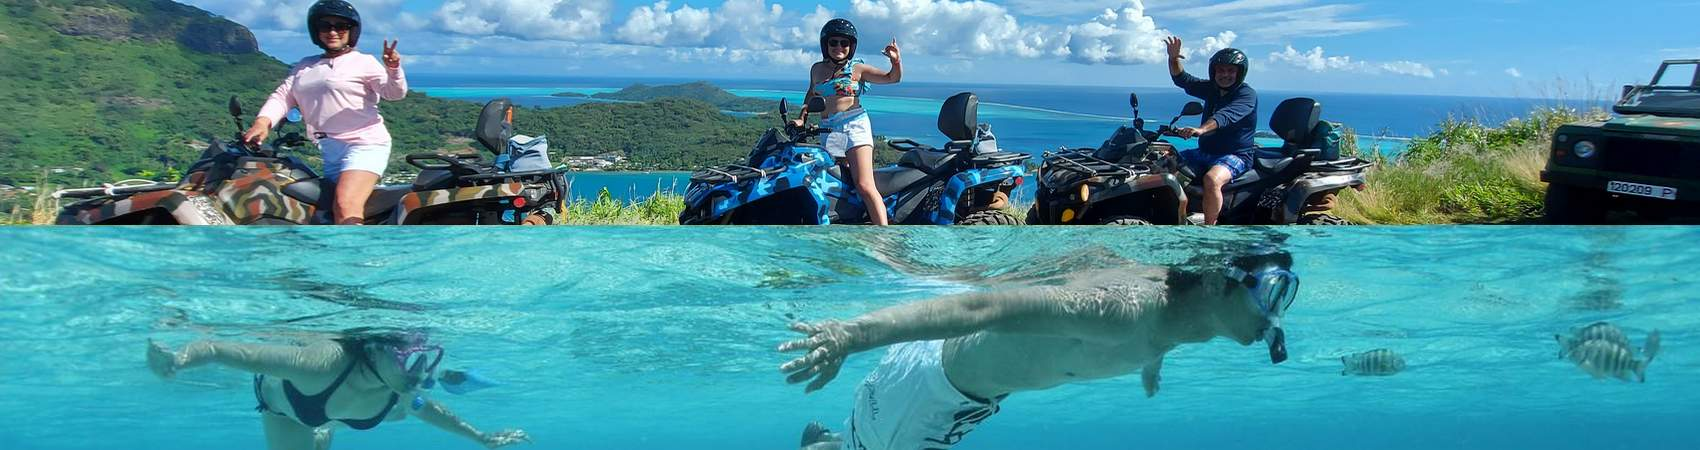 bora-bora-combo-tours-atv-quad-snorkeling-boat-group-tours